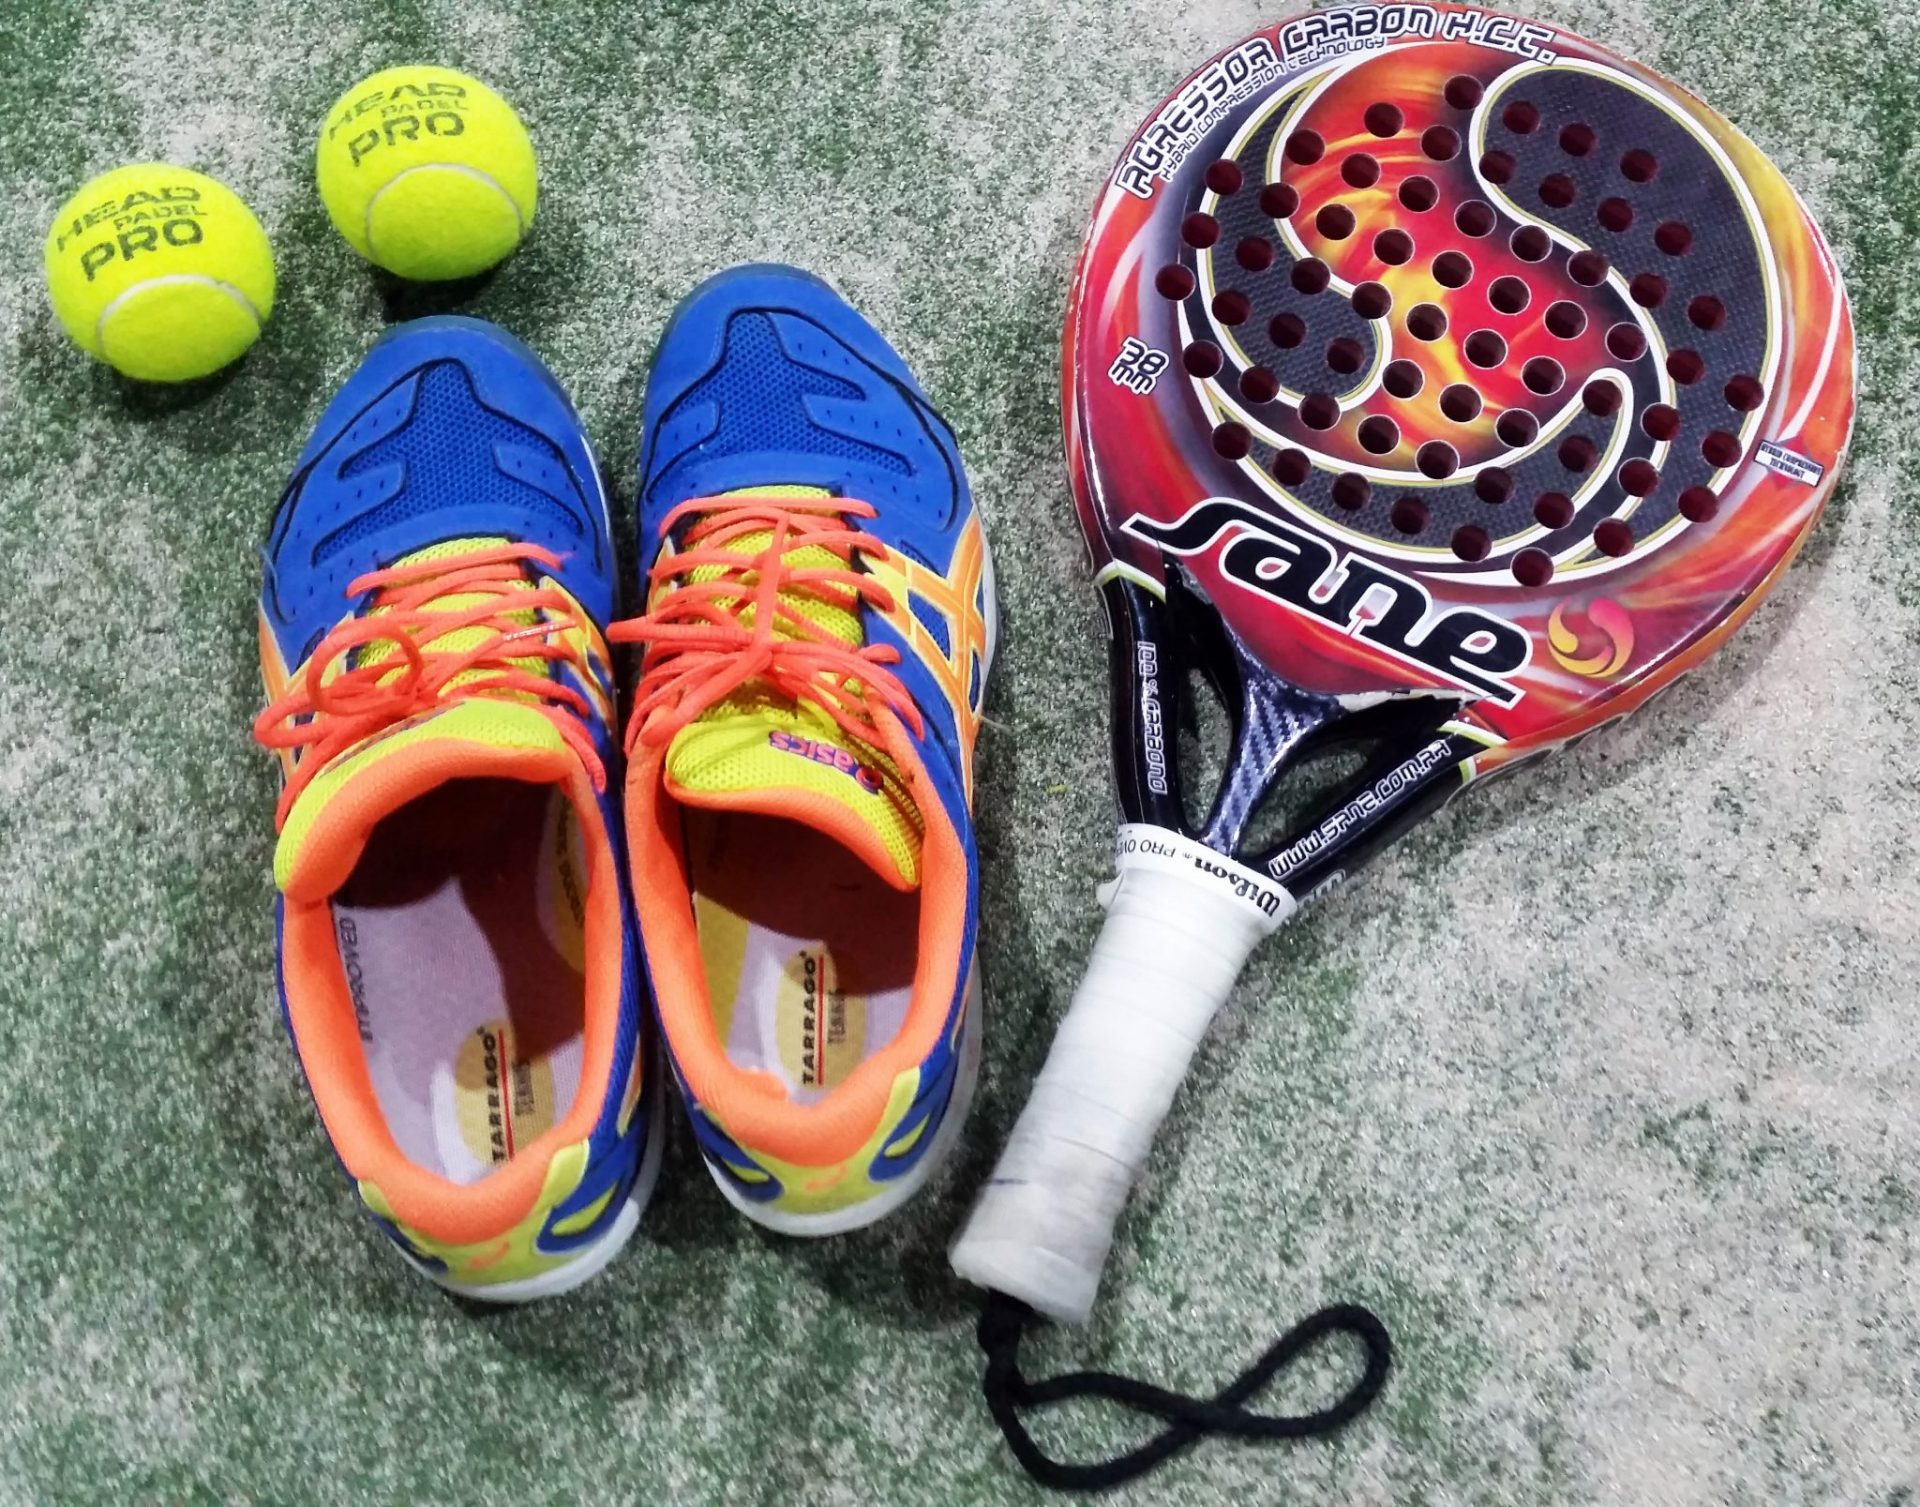 outddor_insole_tennis